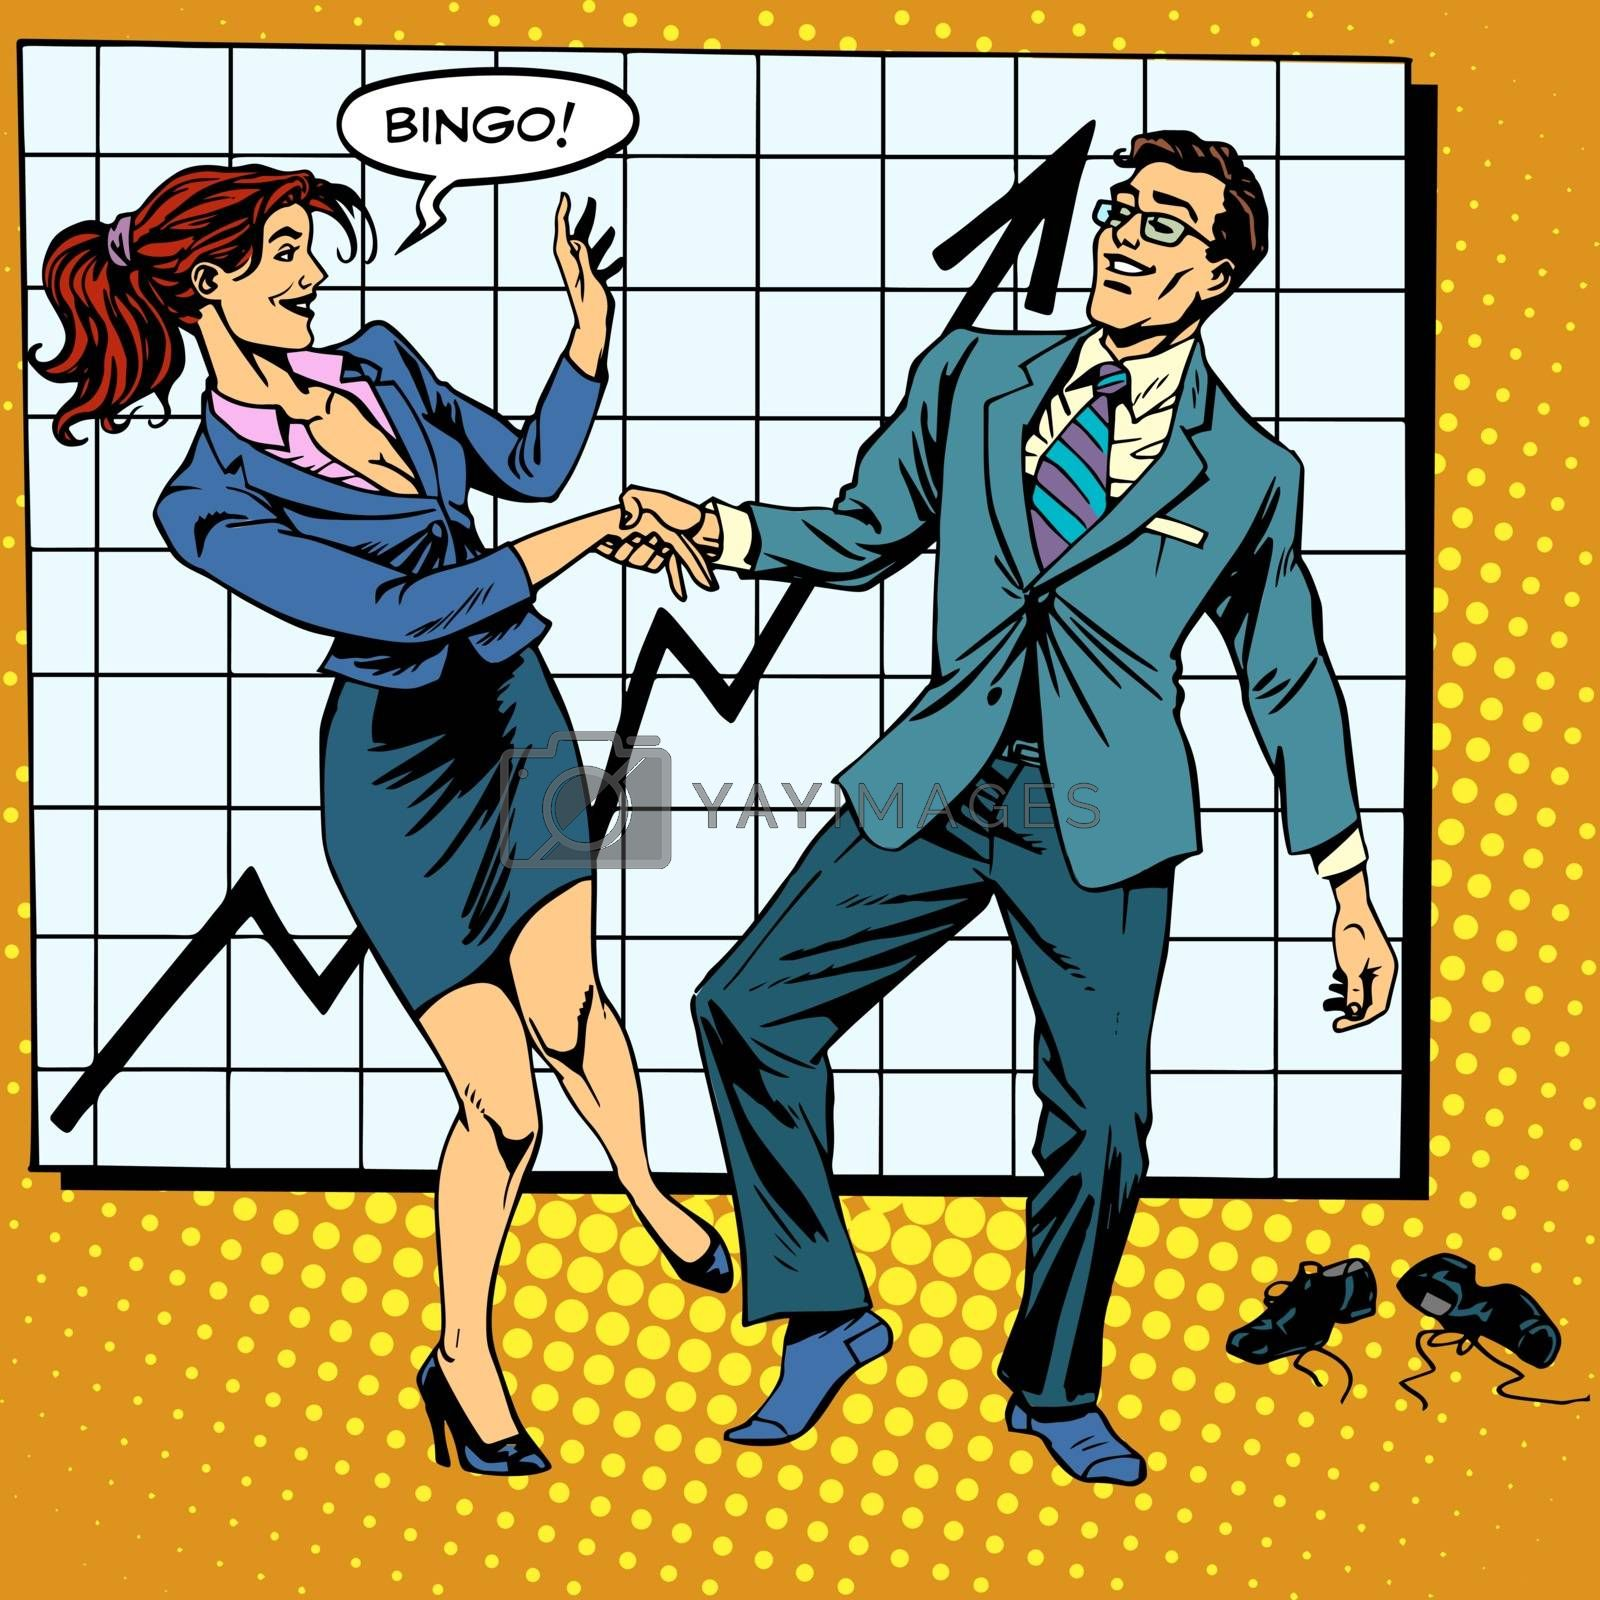 Bingo financial success dance business pop art retro style. Man and woman happily dancing. Graph of growth and profit.